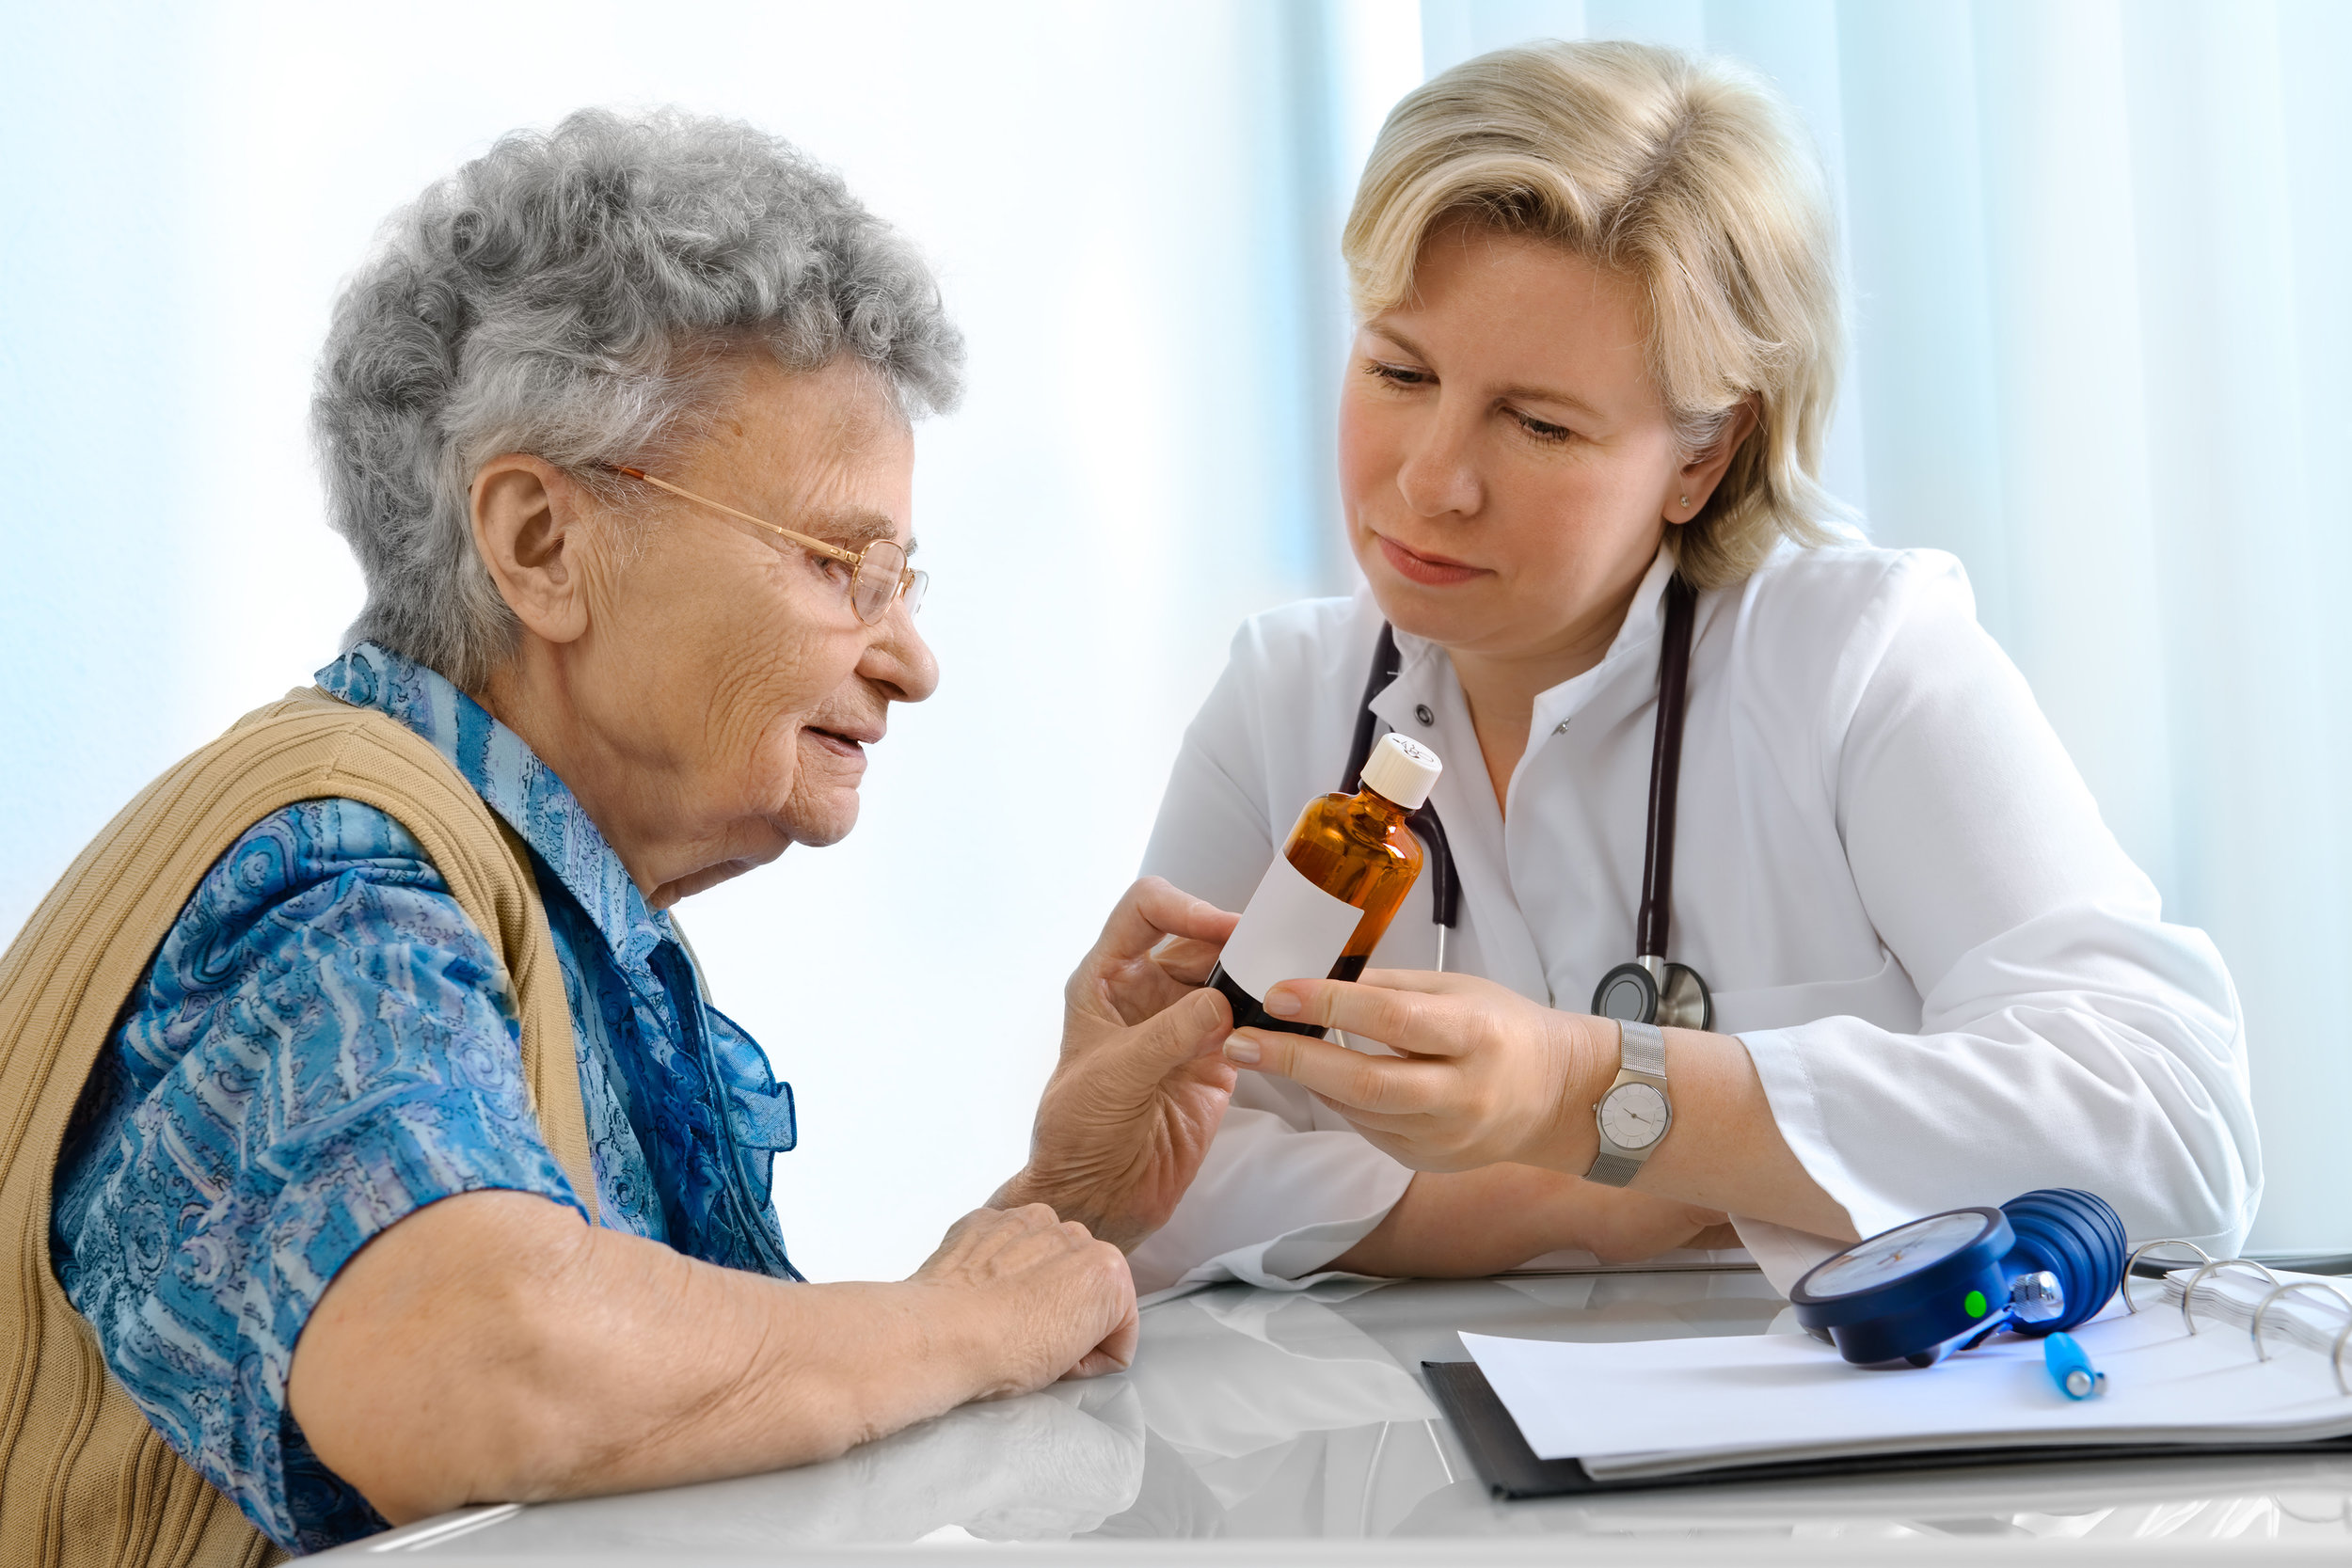 Safety - We thoroughly check medications and living environment to make sure your loved one is safe.